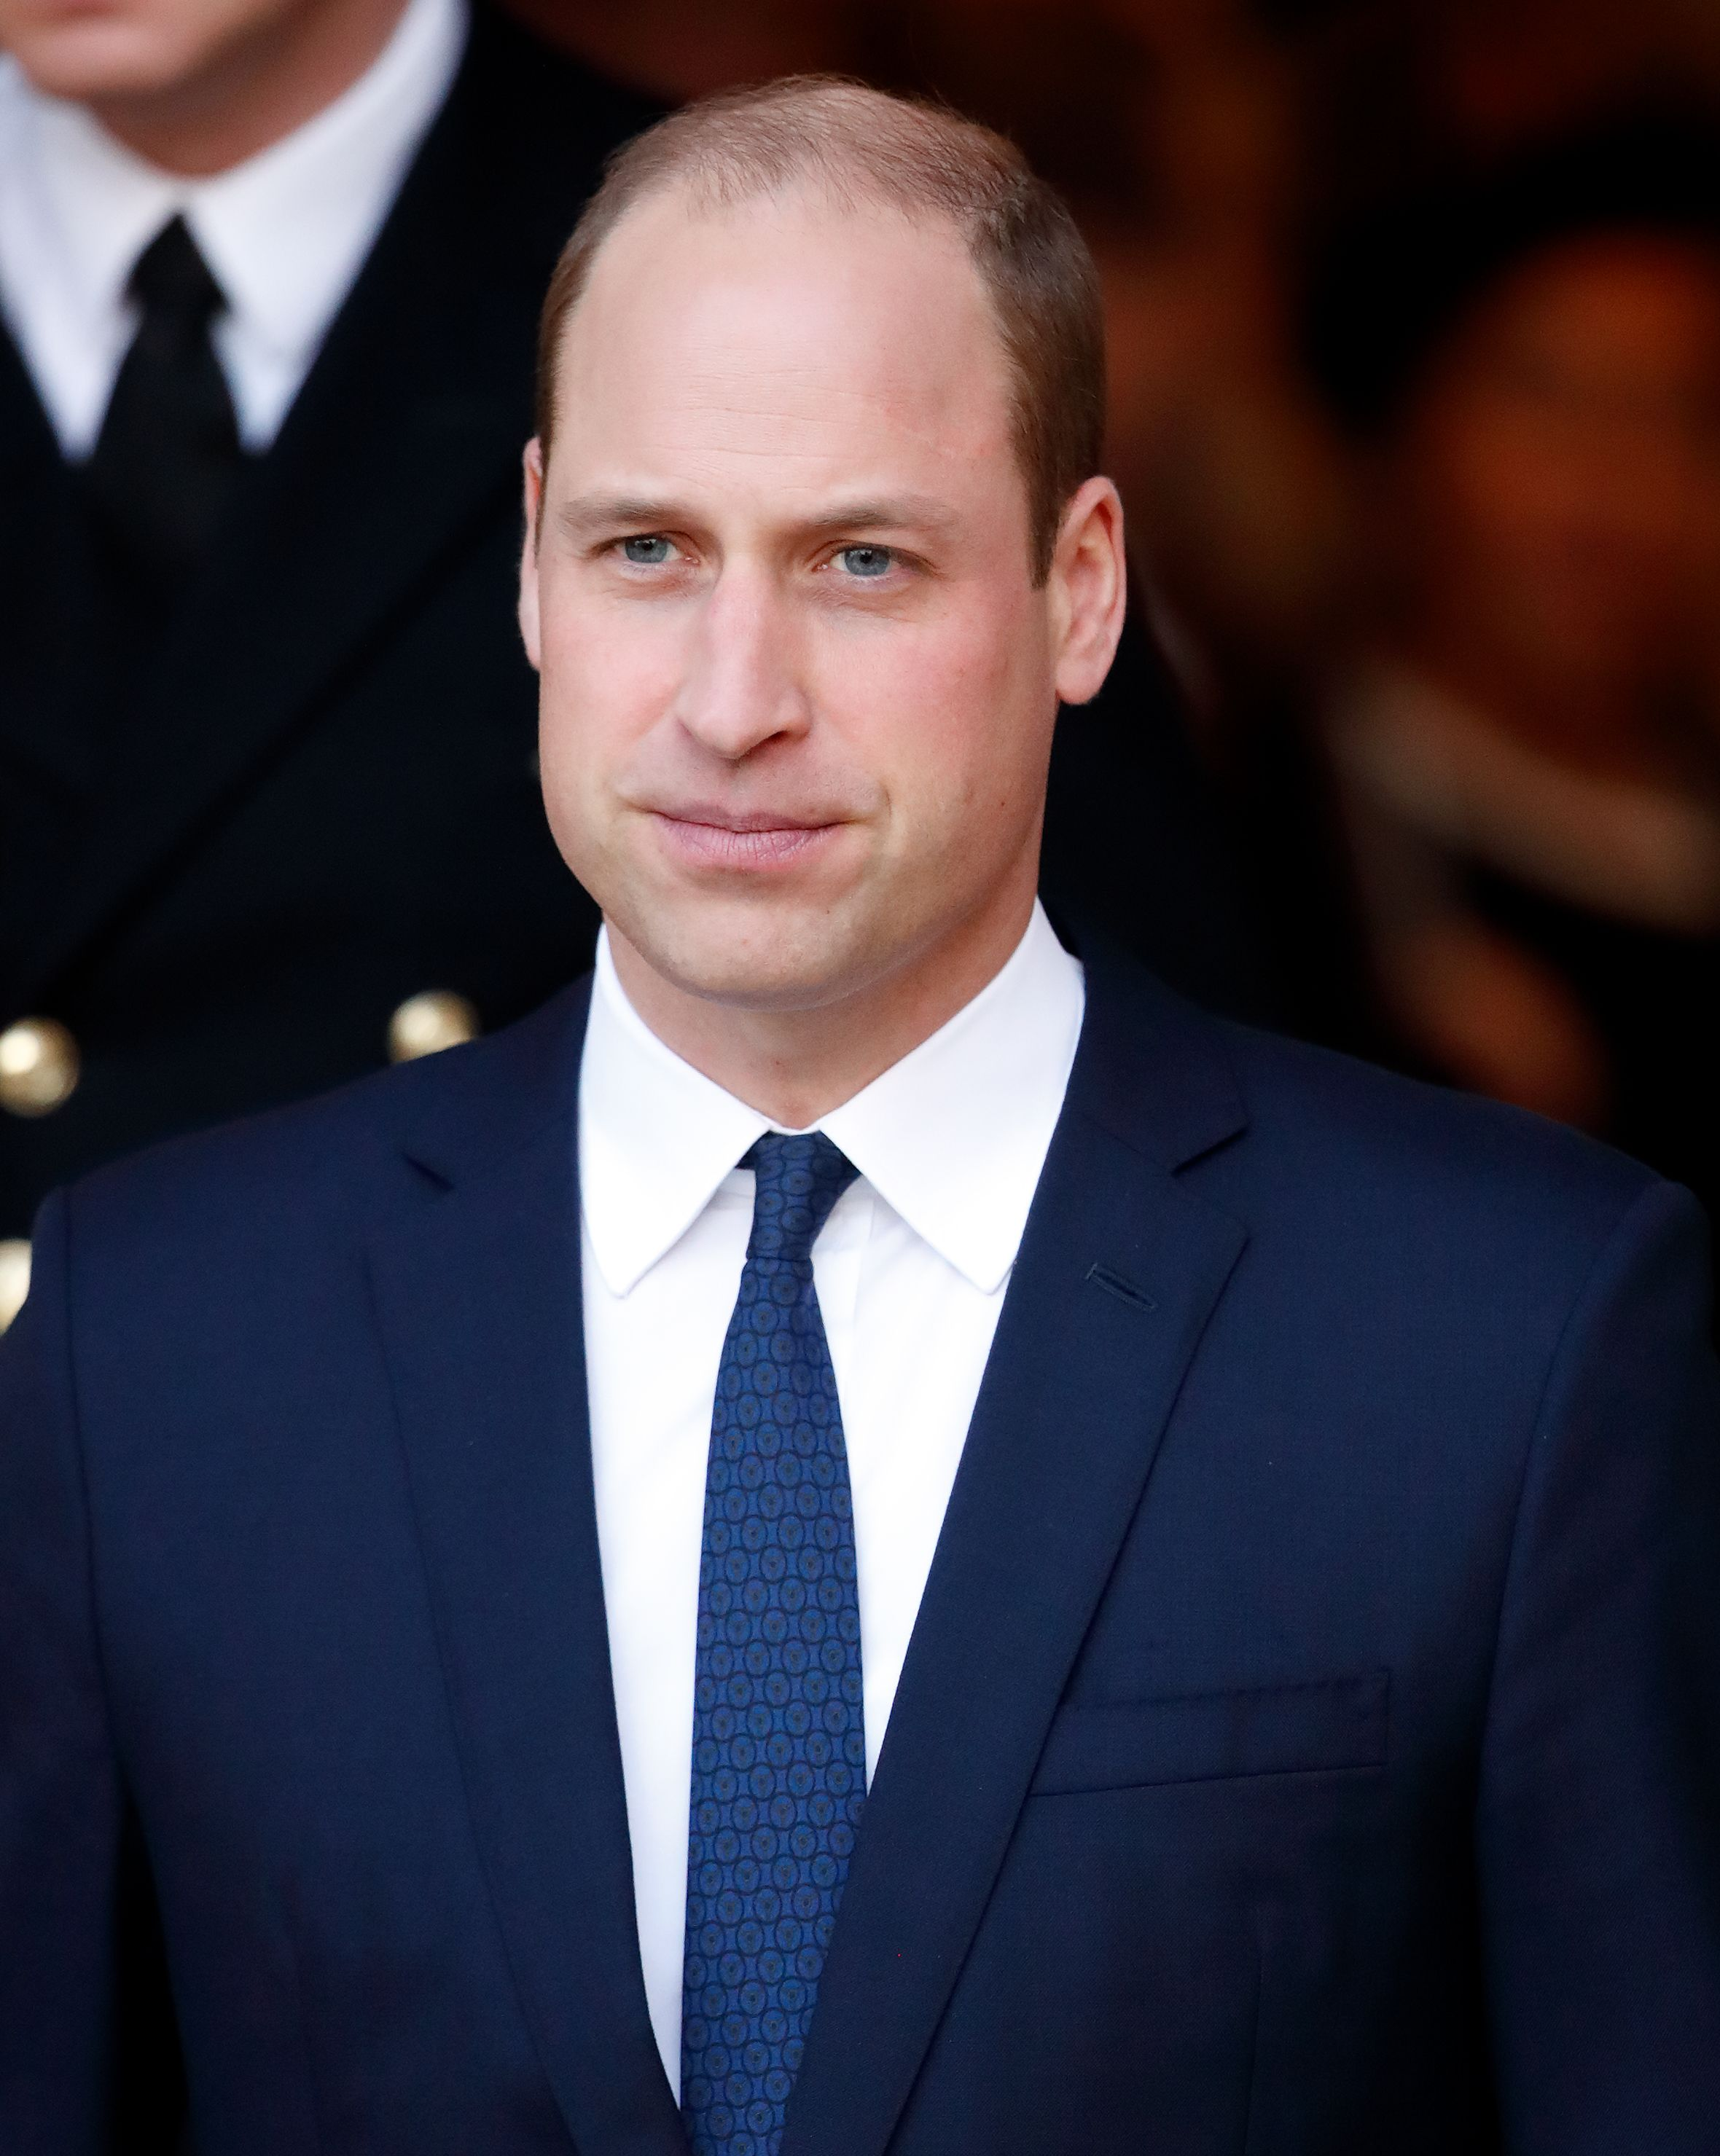 Prince William Will Speak at a TED Talk About Climate Change